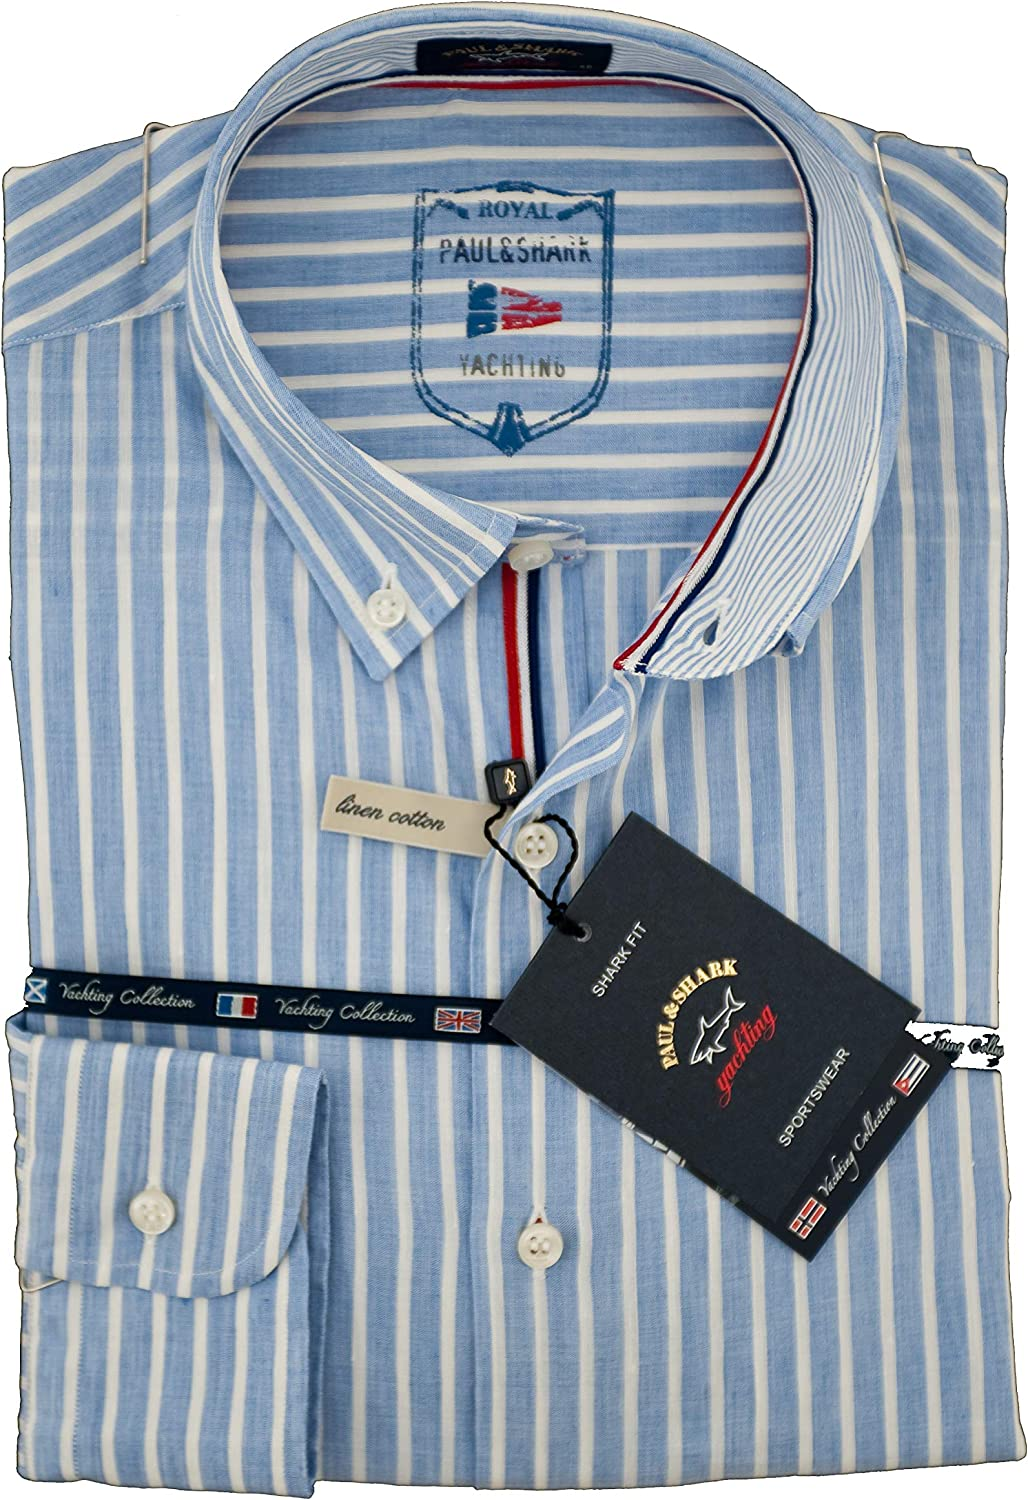 Paul & Shark Camisa Slim Fit Celeste A Righe 38: Amazon.es: Ropa y accesorios